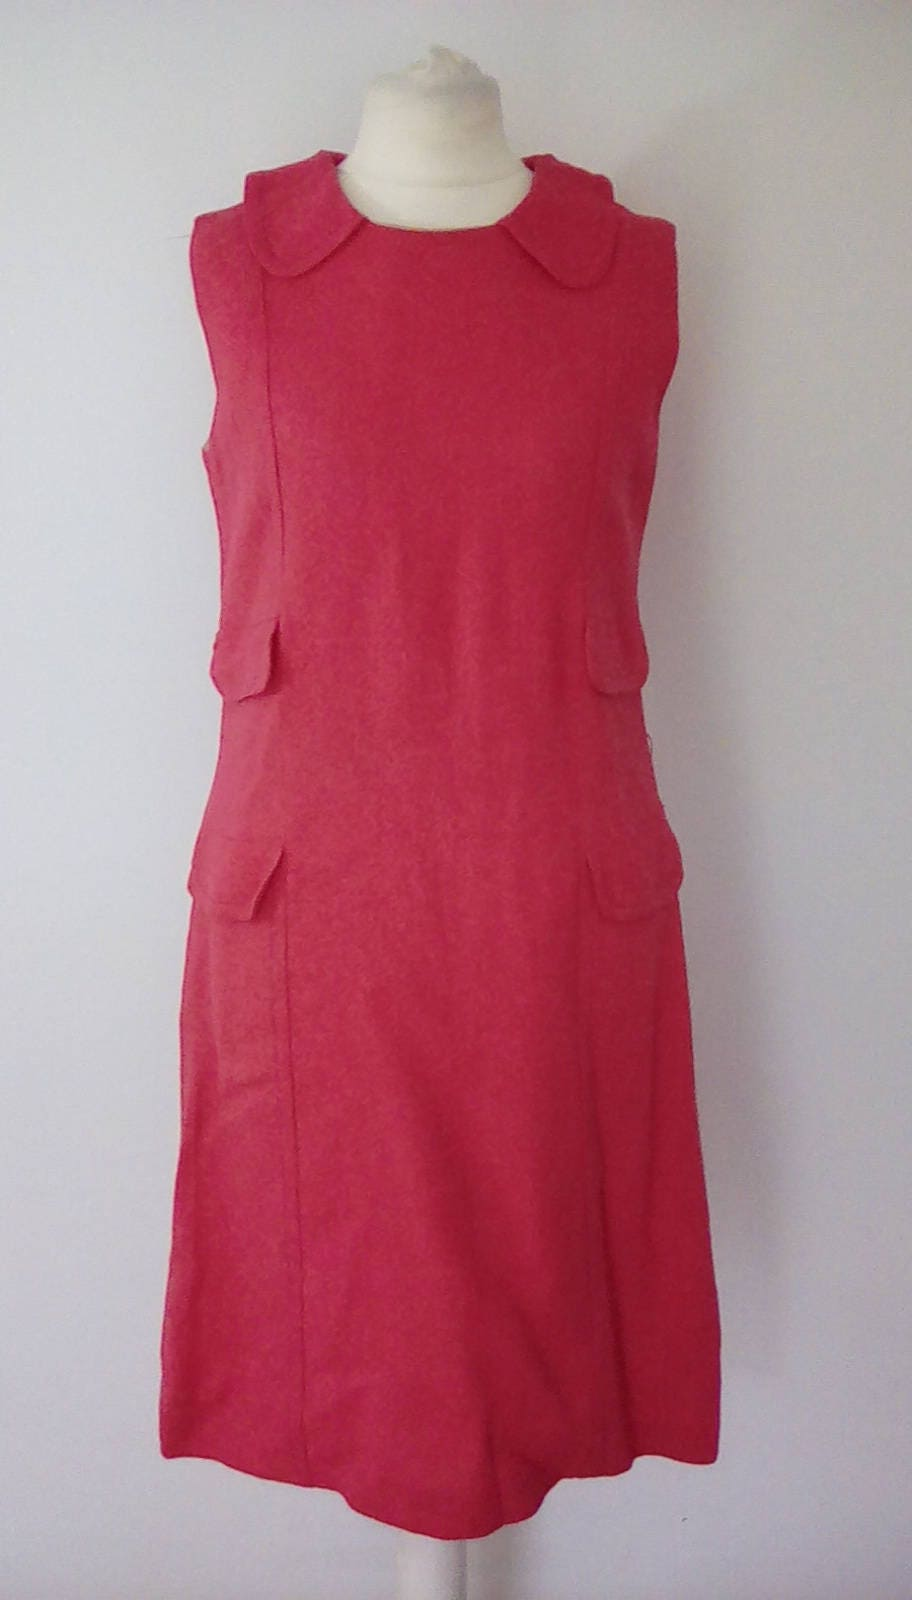 Vintage 60s 70s pink linen dress by Val Somers of London size small to medium